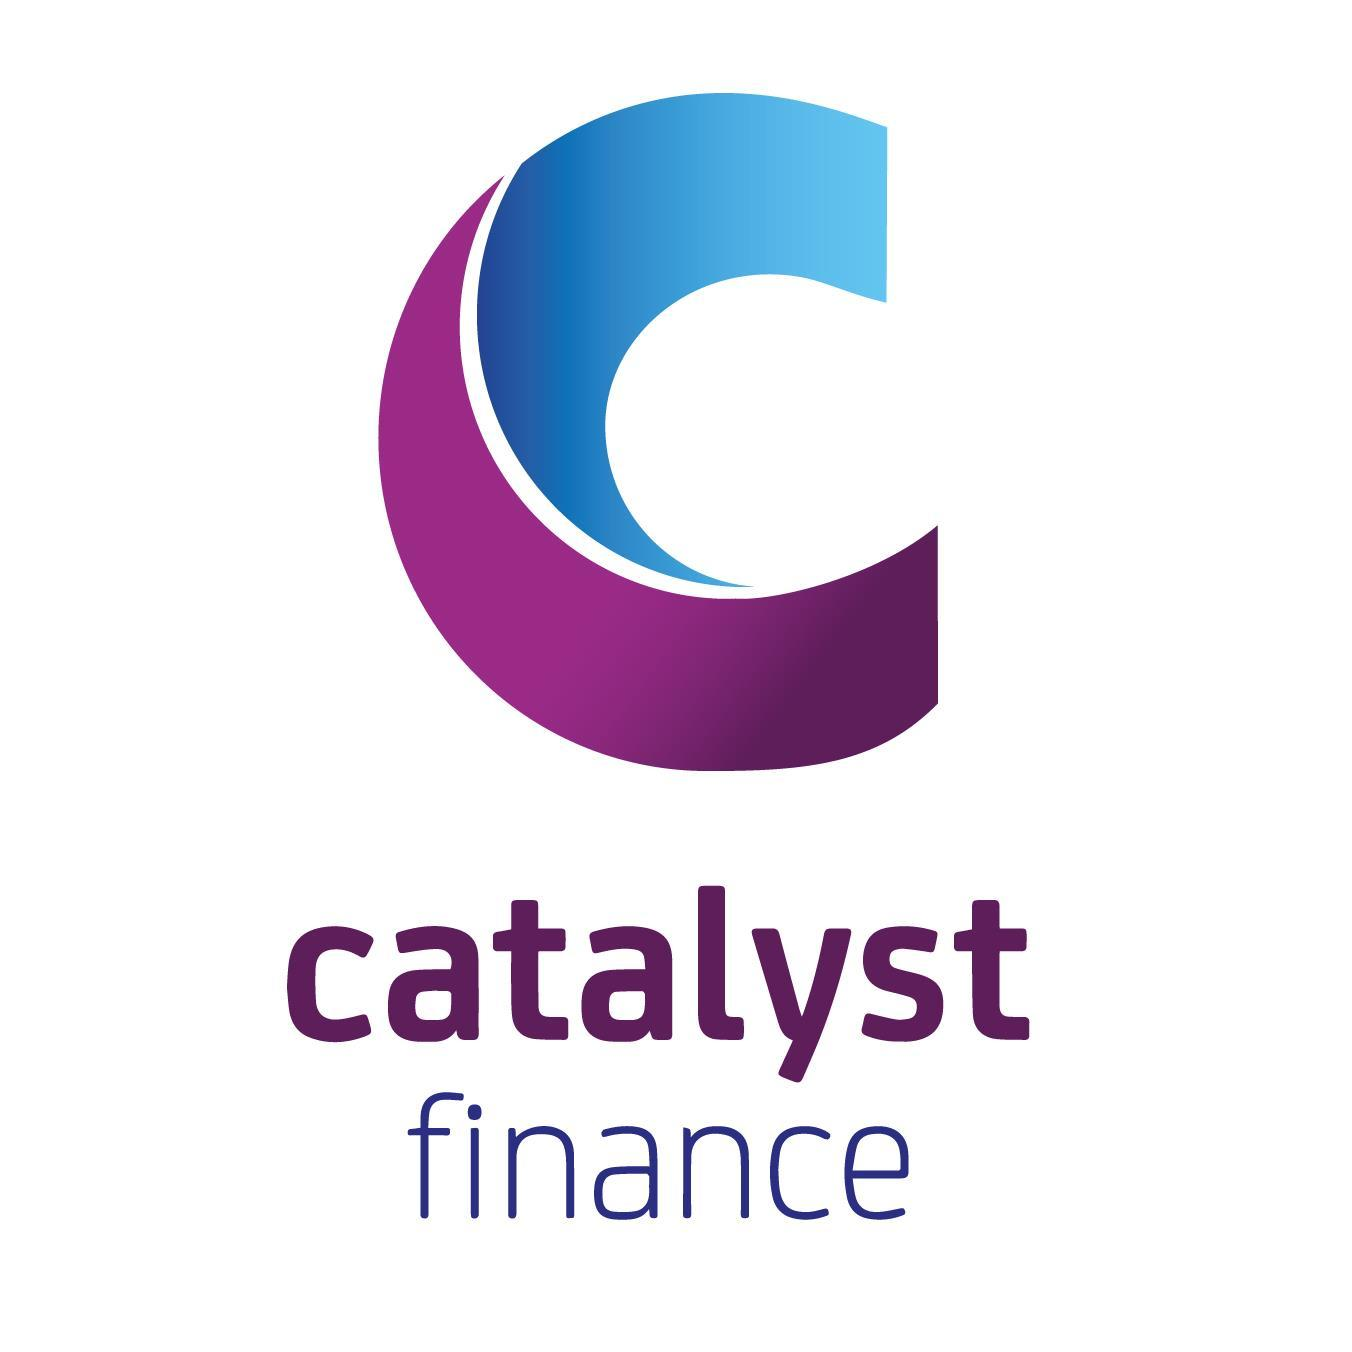 Finance: Catalyst Finance (@catfinance)